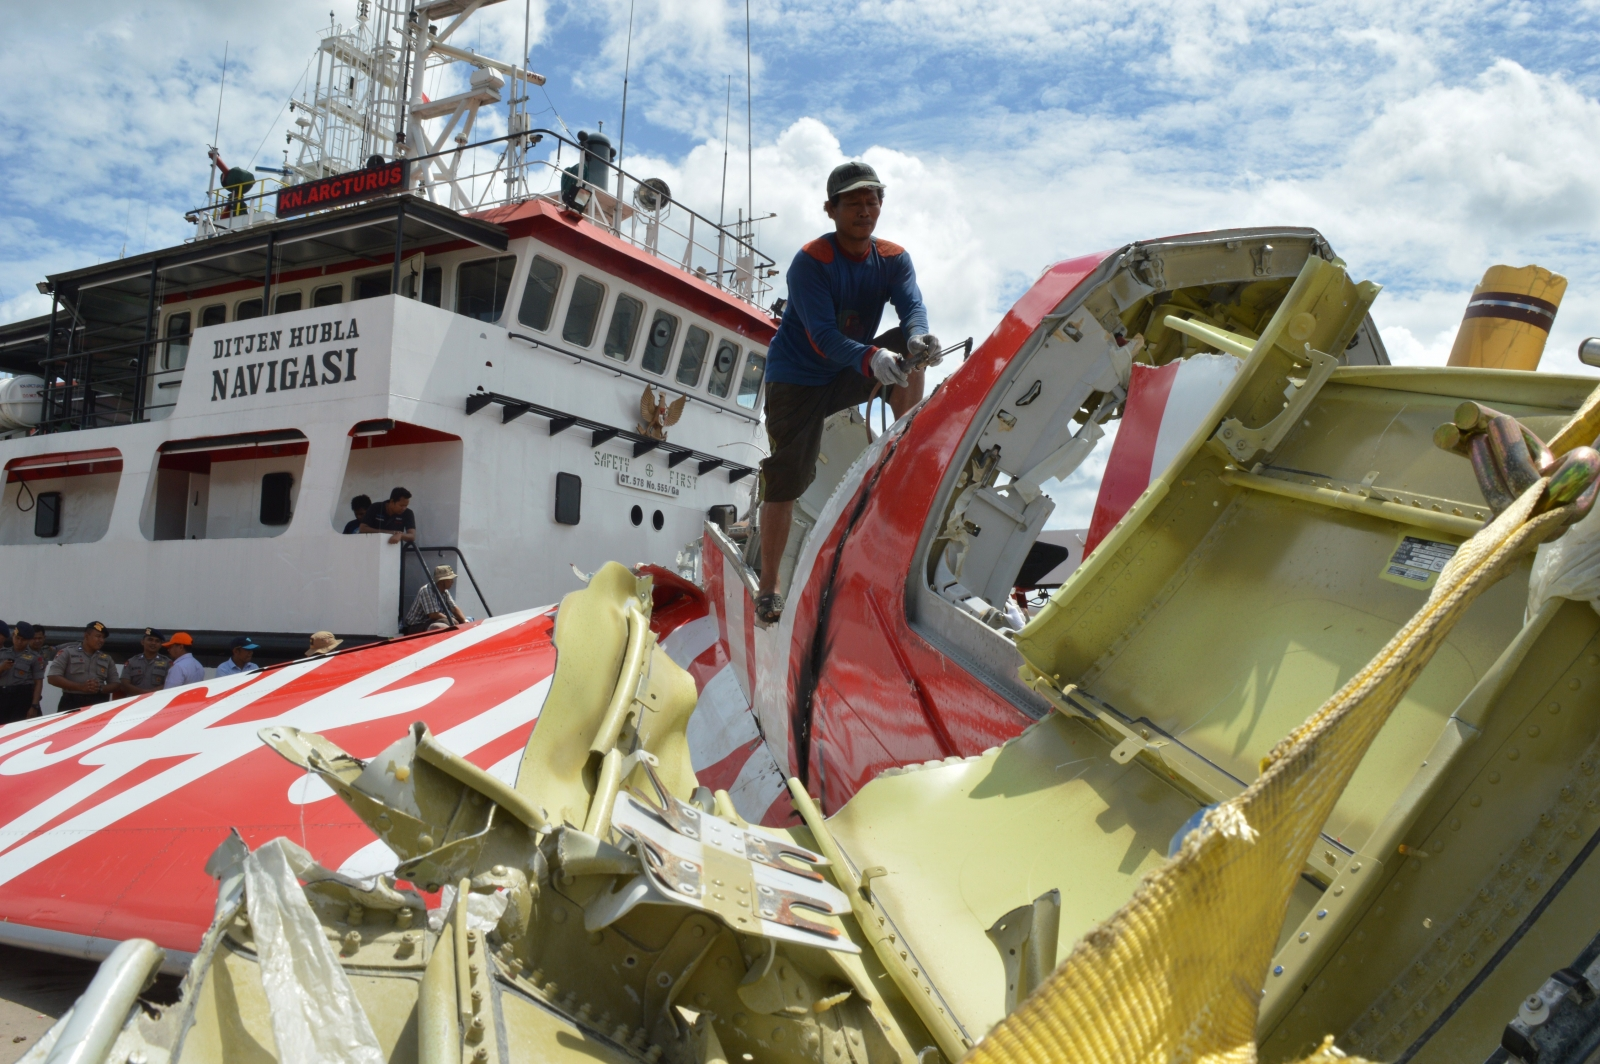 AirAsia QZ8501 was not being flown by captain when it crashed in to Java Sea